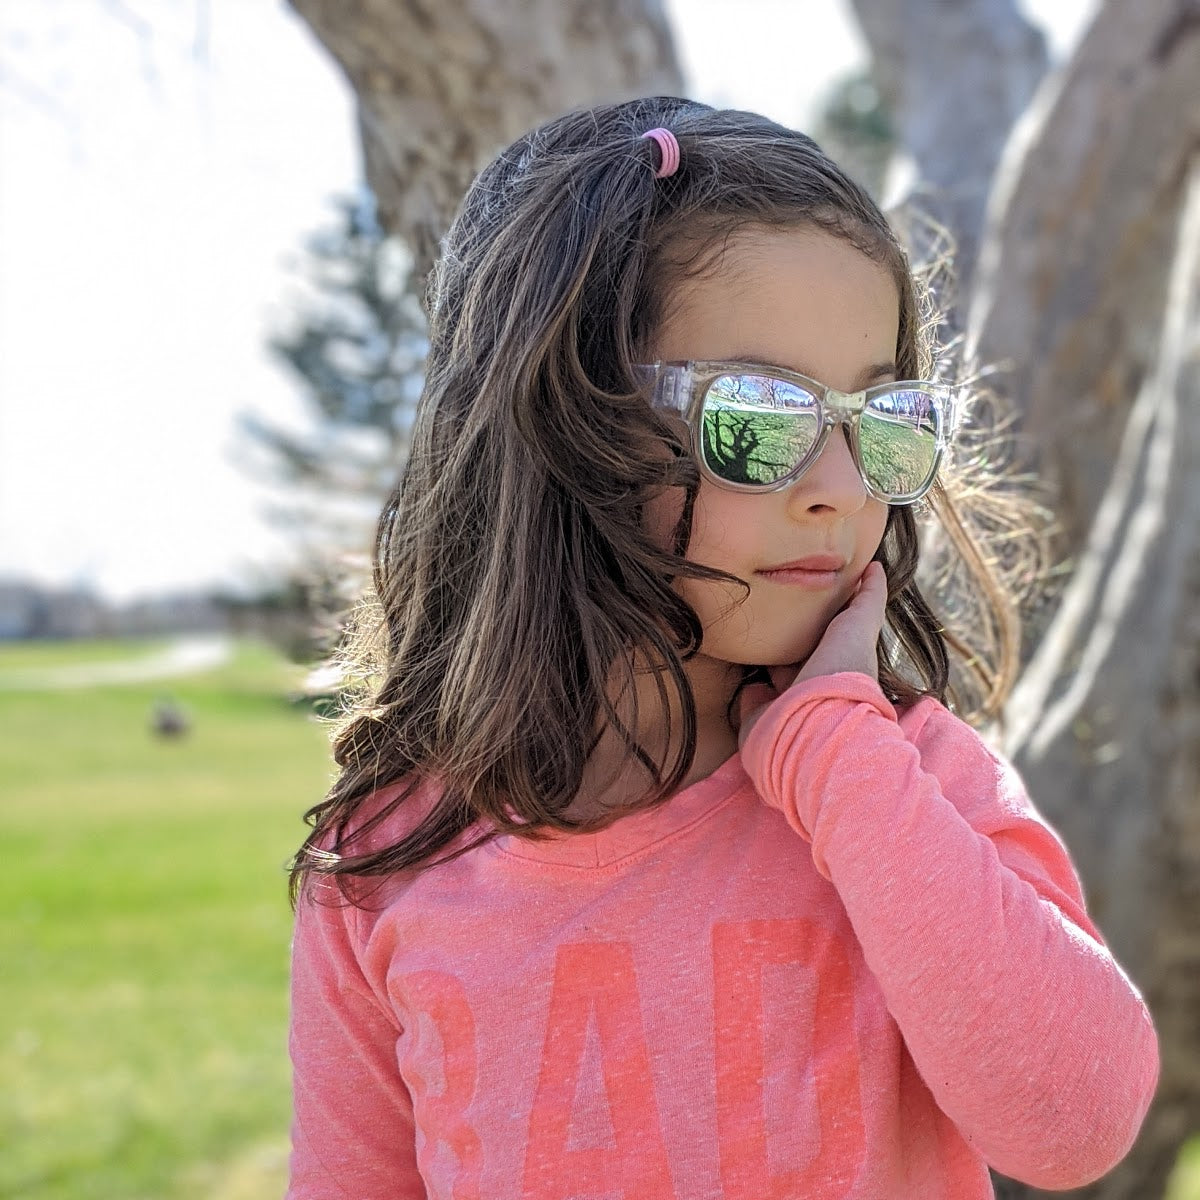 Why choose polarized lenses?